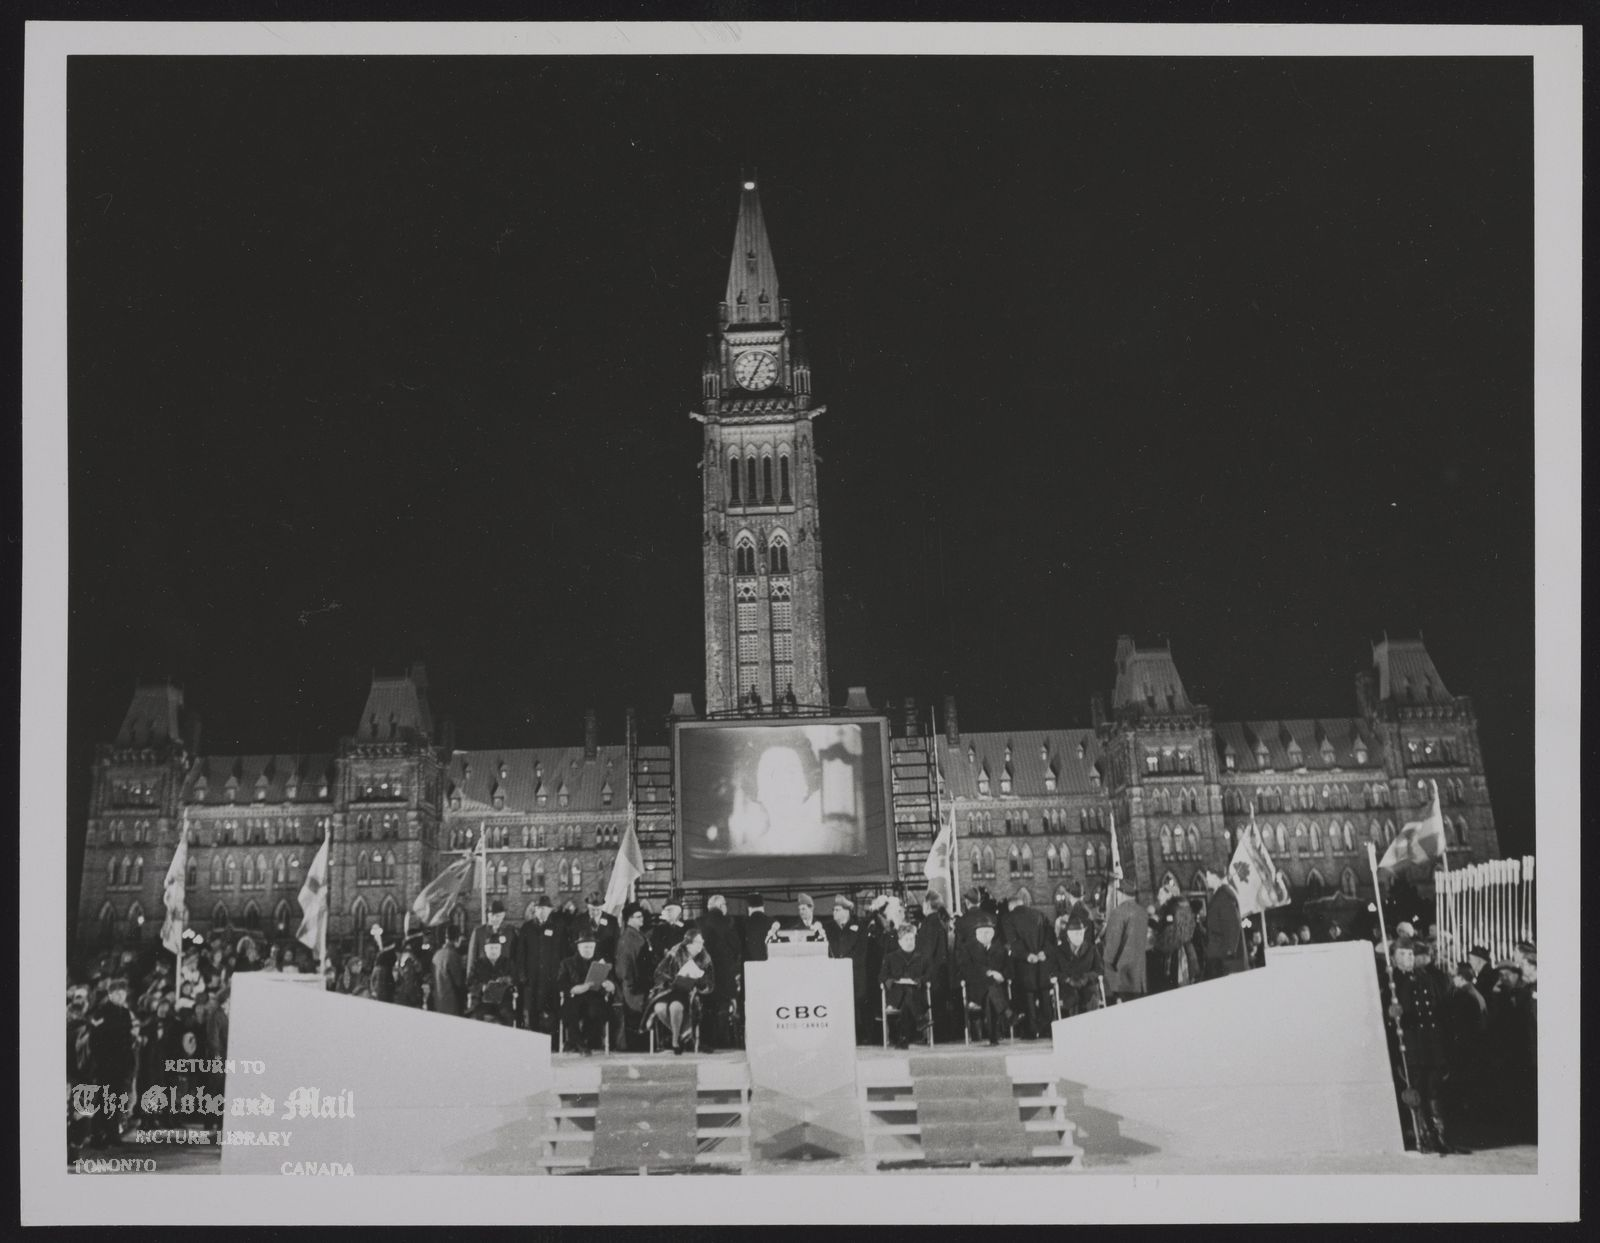 CANADA dominion Centennial Centennial ceremony on Parliament Hill on New Year's Eve